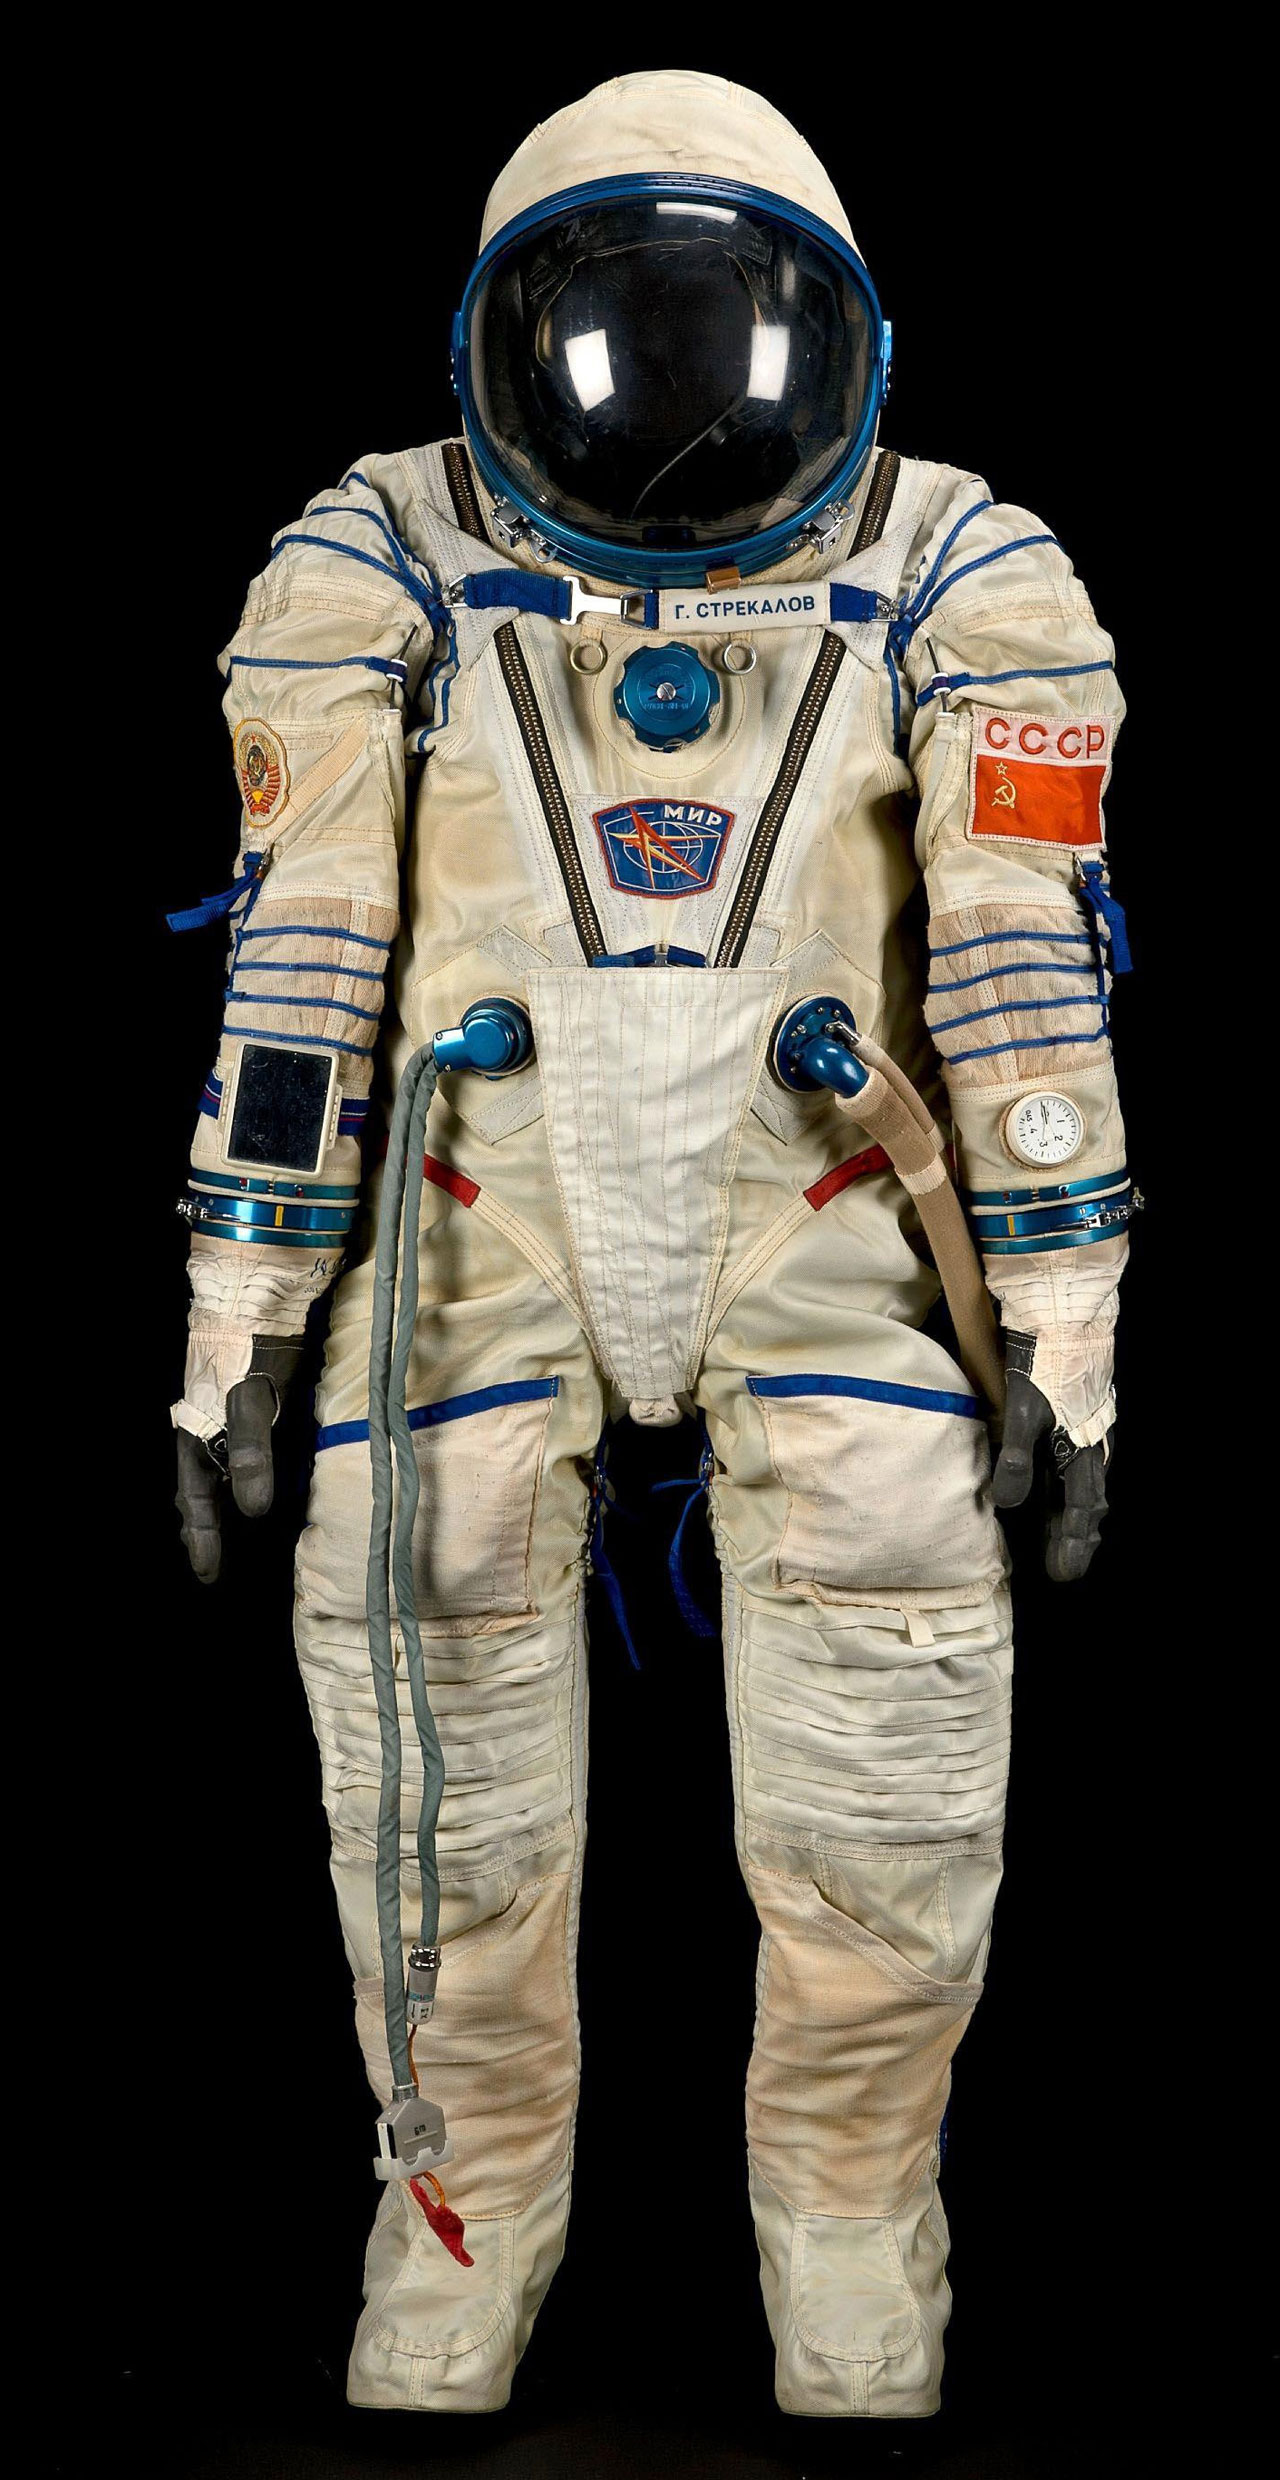 nasa space suit material - photo #19